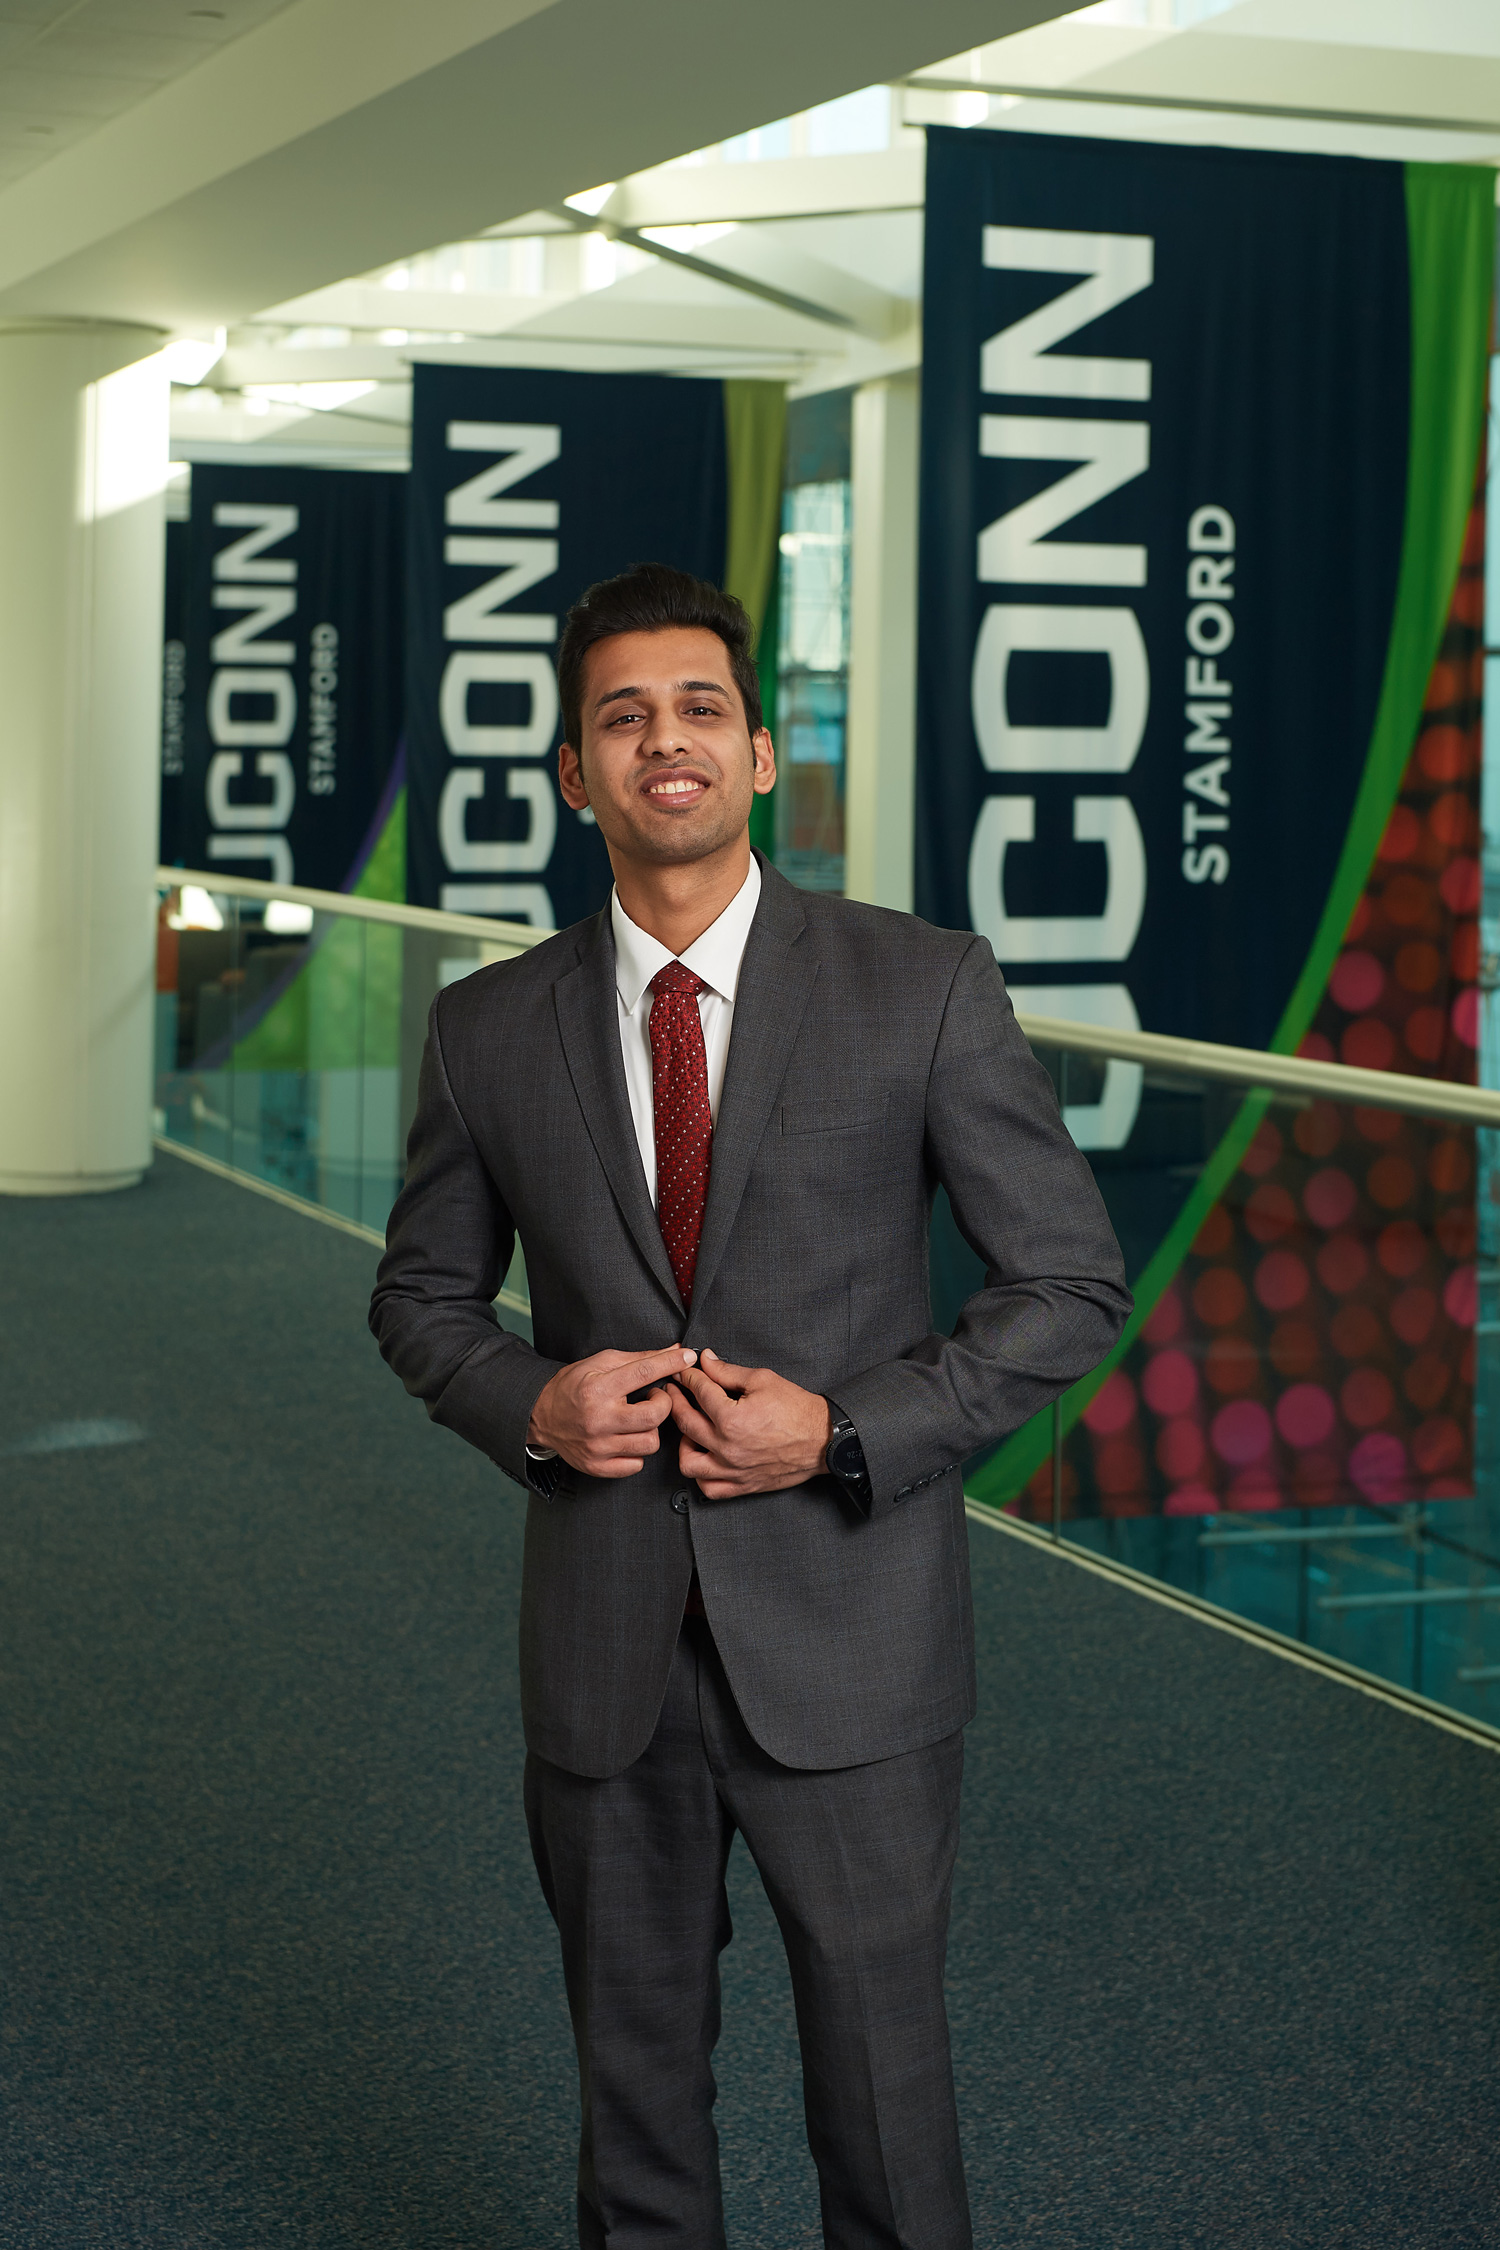 Anshul Maglani stands near the flags hanging in the Stamford campus atrium